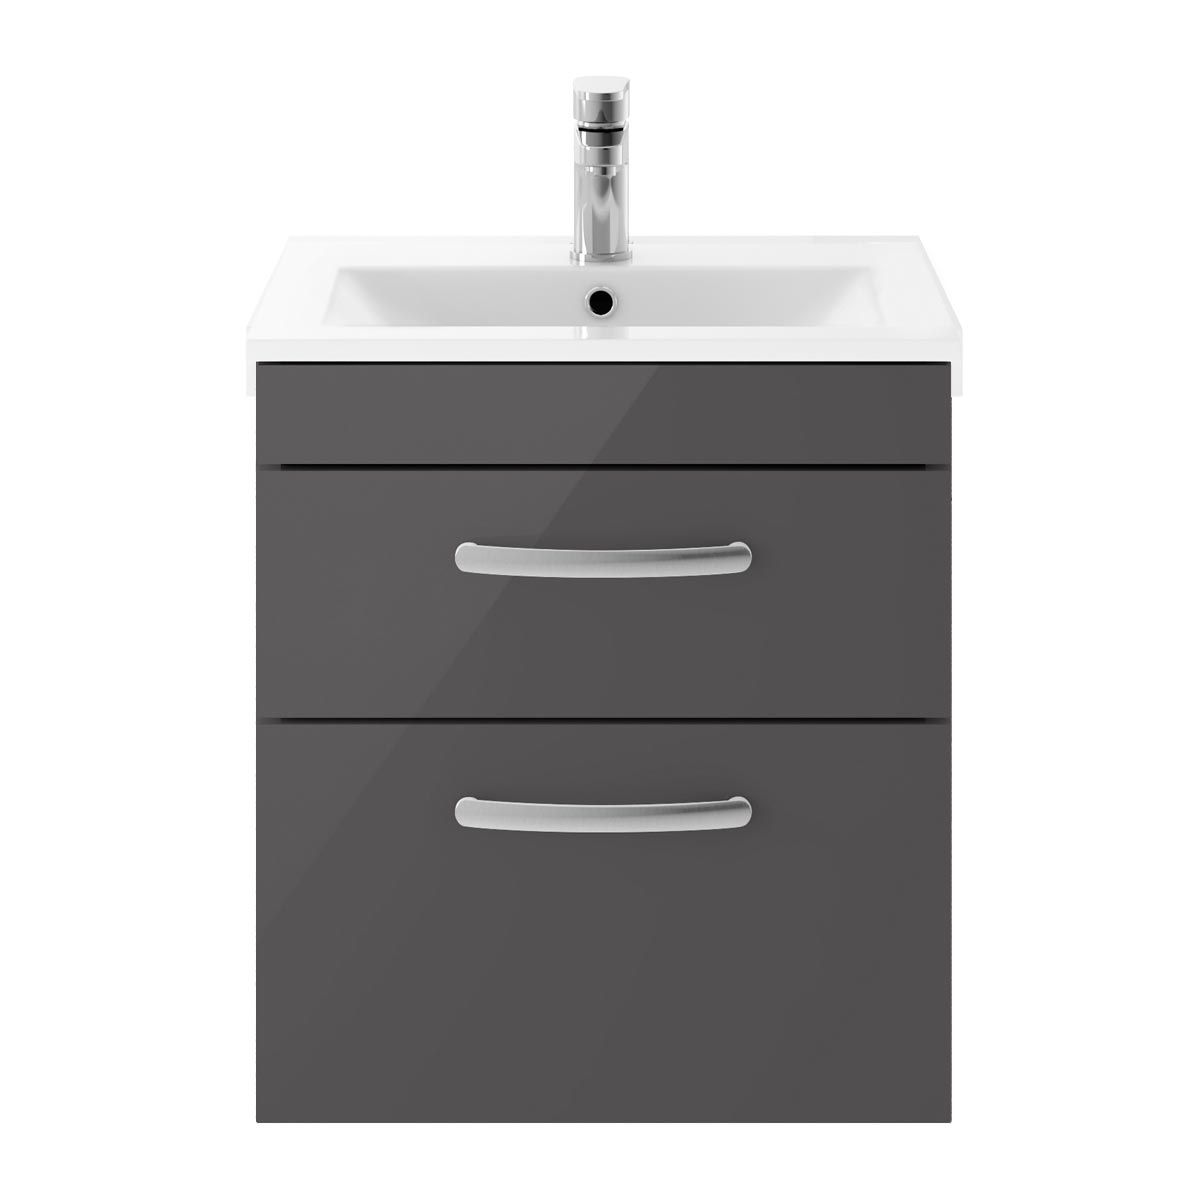 Nuie Athena Gloss Grey Mist 2 Drawer Wall Hung Vanity Unit with 18mm Profile Basin 500mm